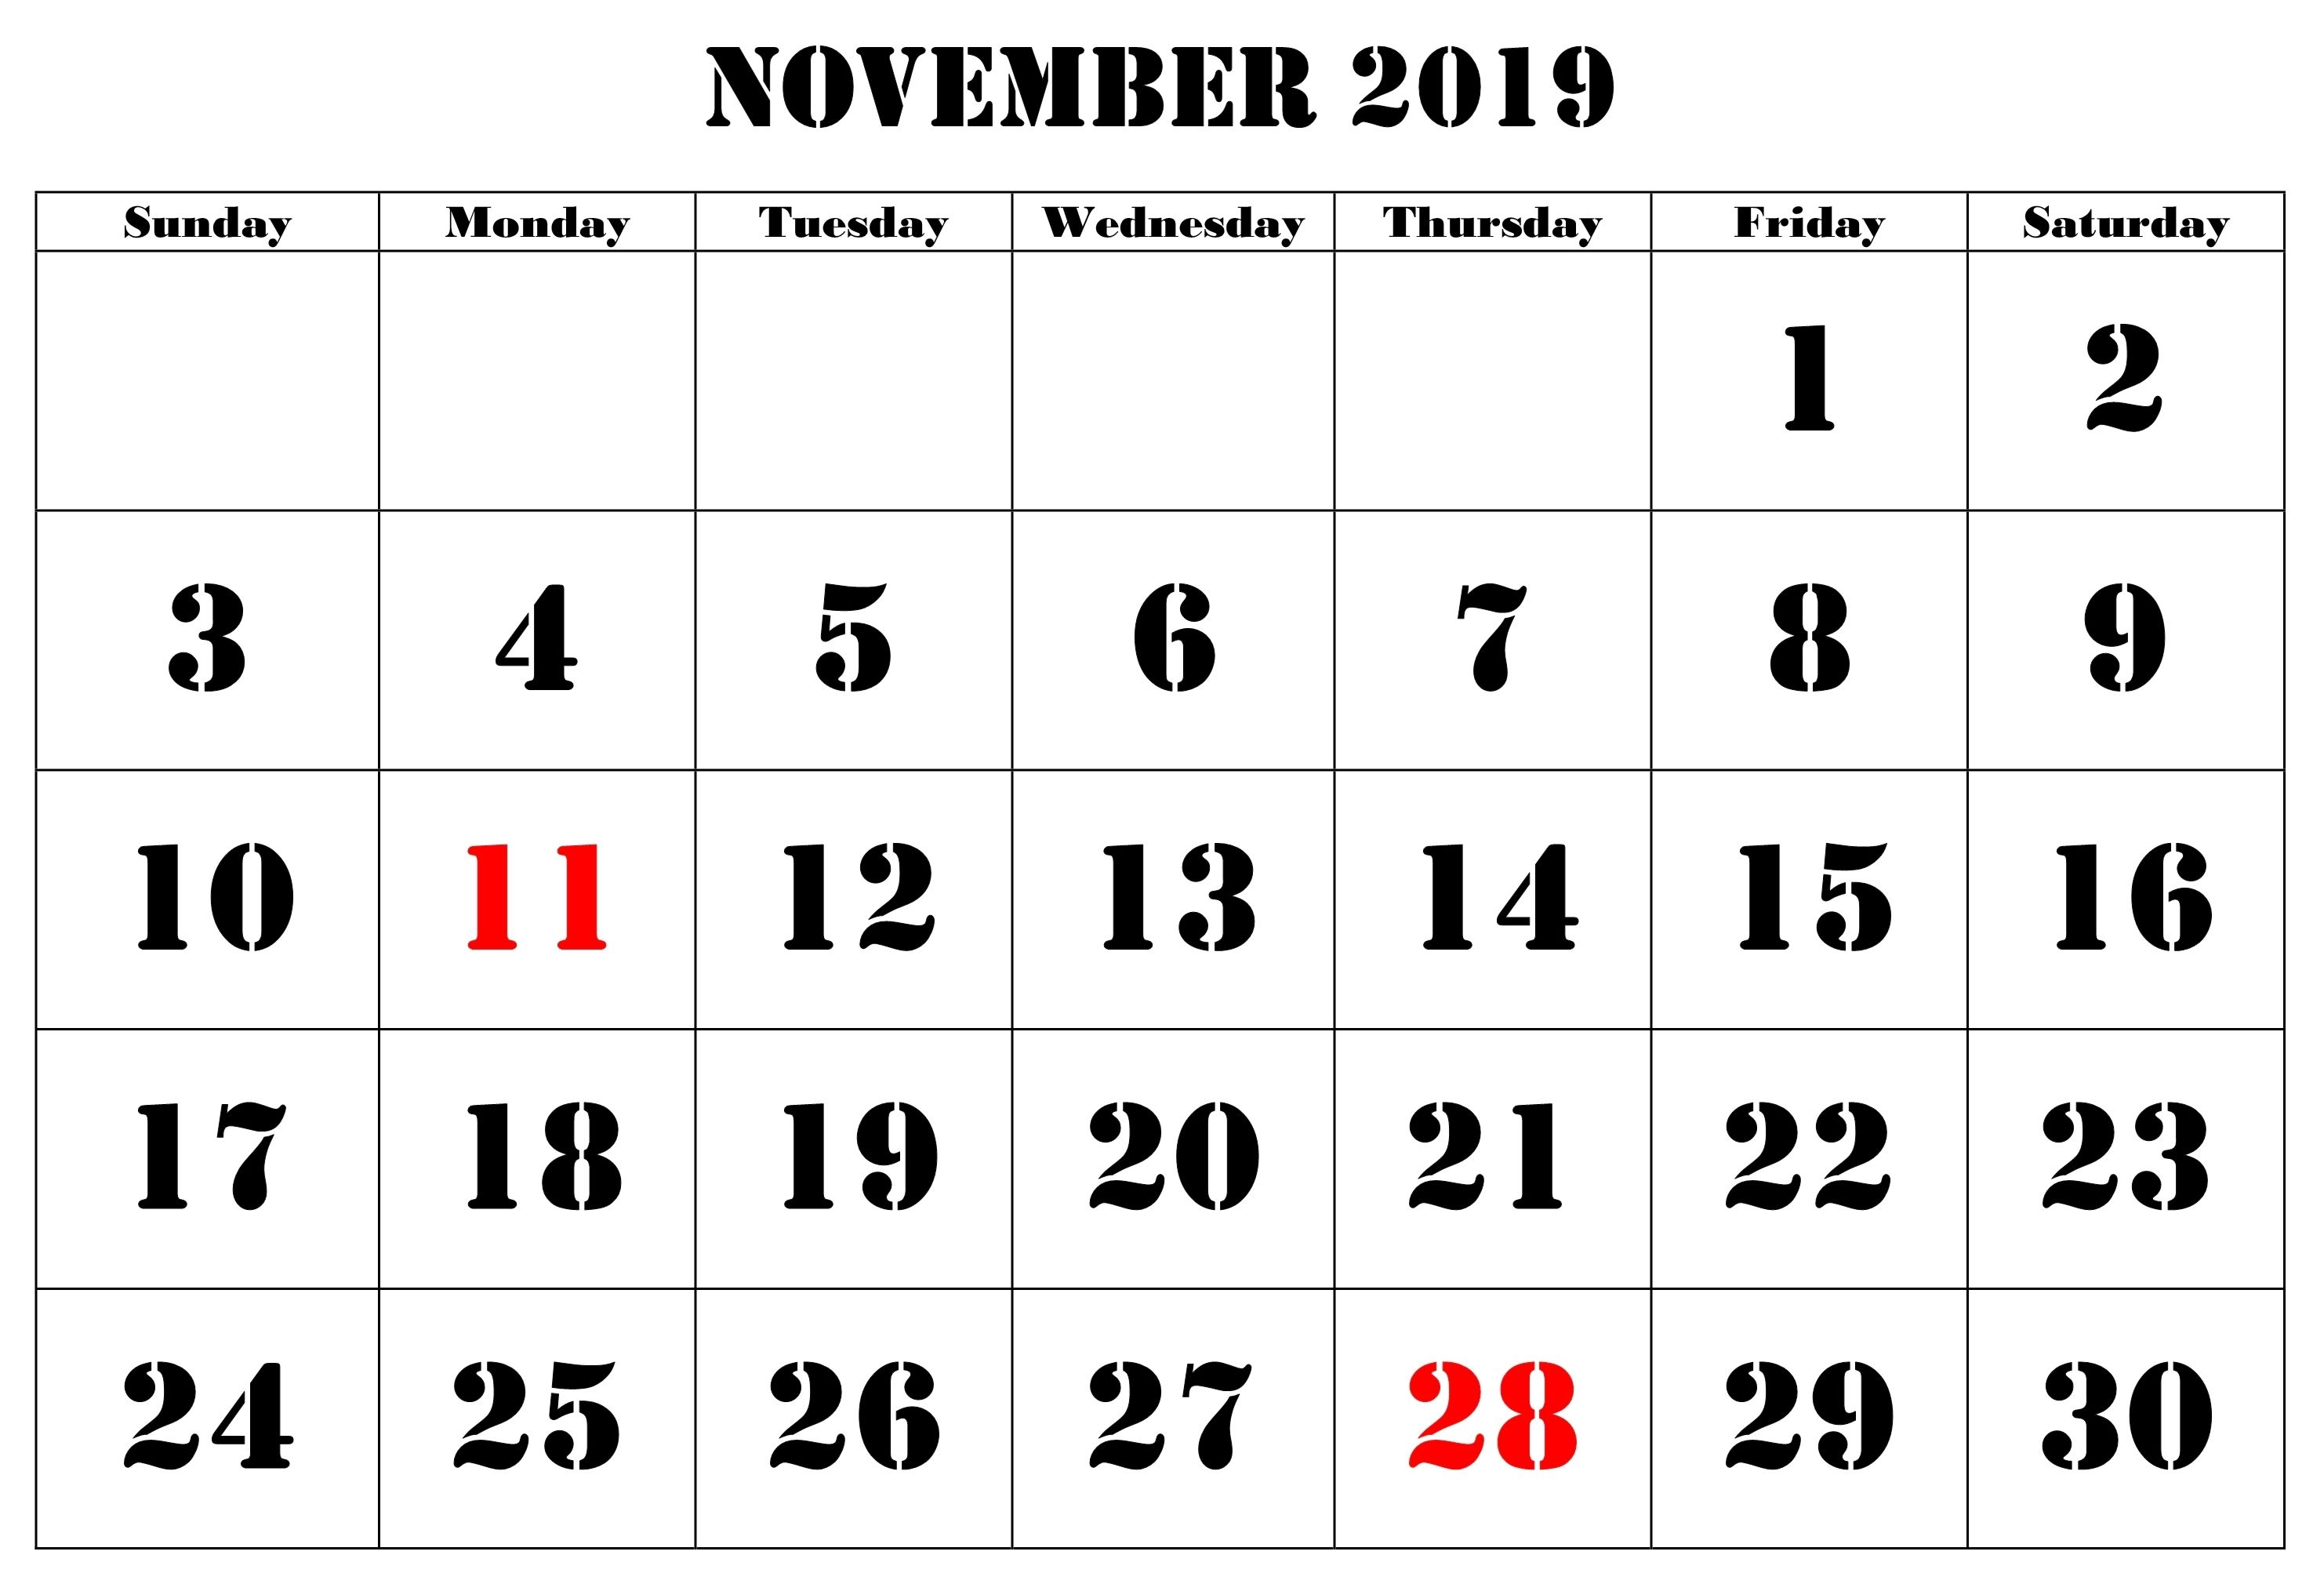 Printable November Holidays 2019 Calendar Calendar Template November Holidays Free Printable Calendar Templates